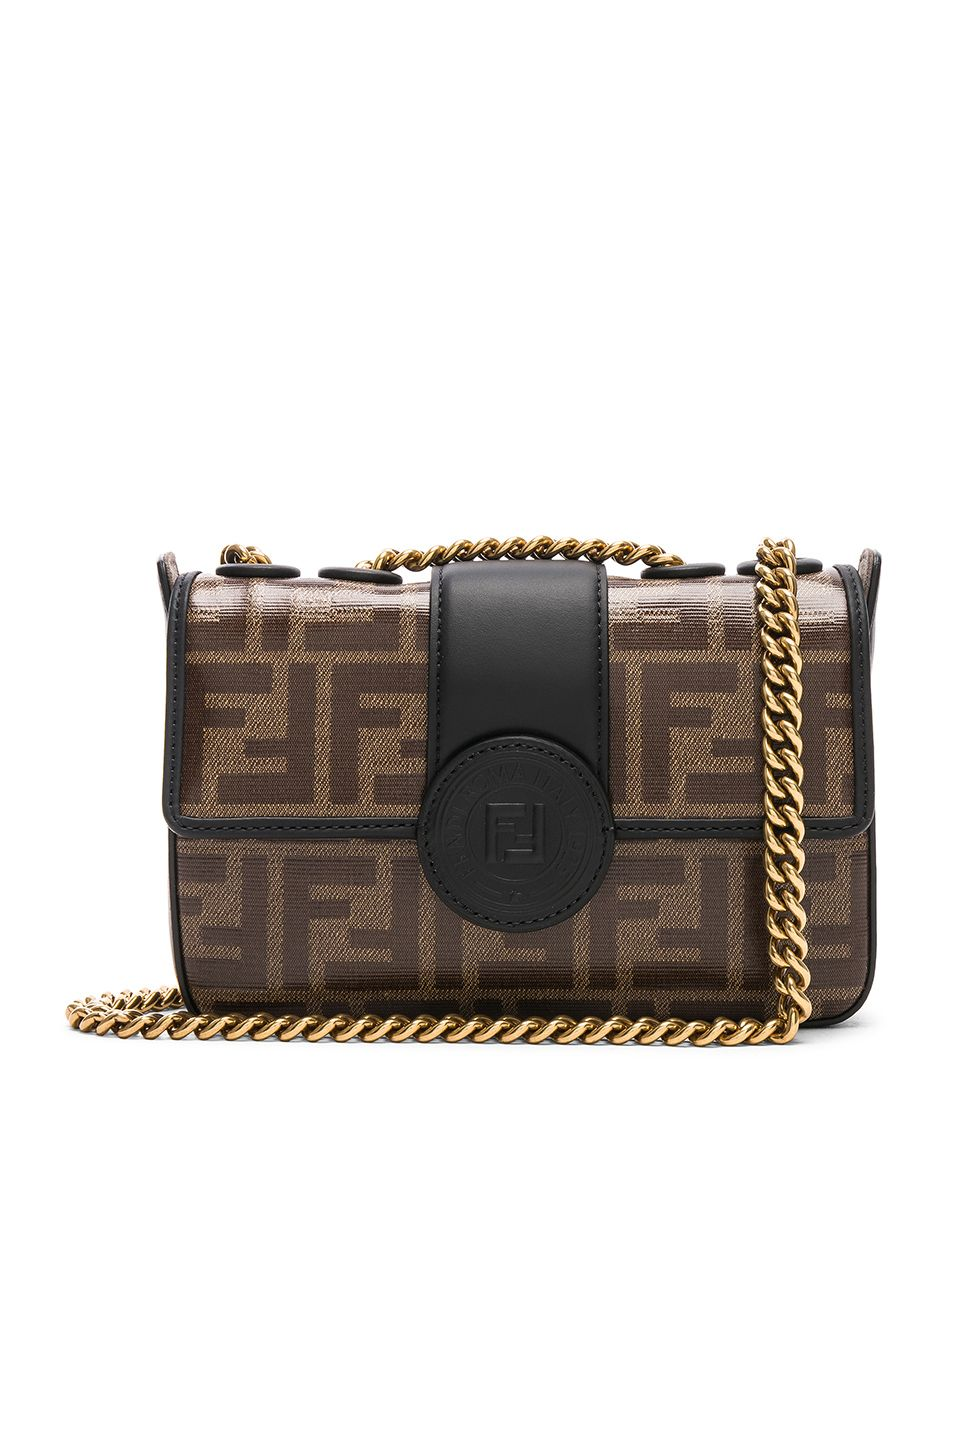 Image 1 of Fendi Mini Logo Print Double F in Brown   Black  5f8298c918f10